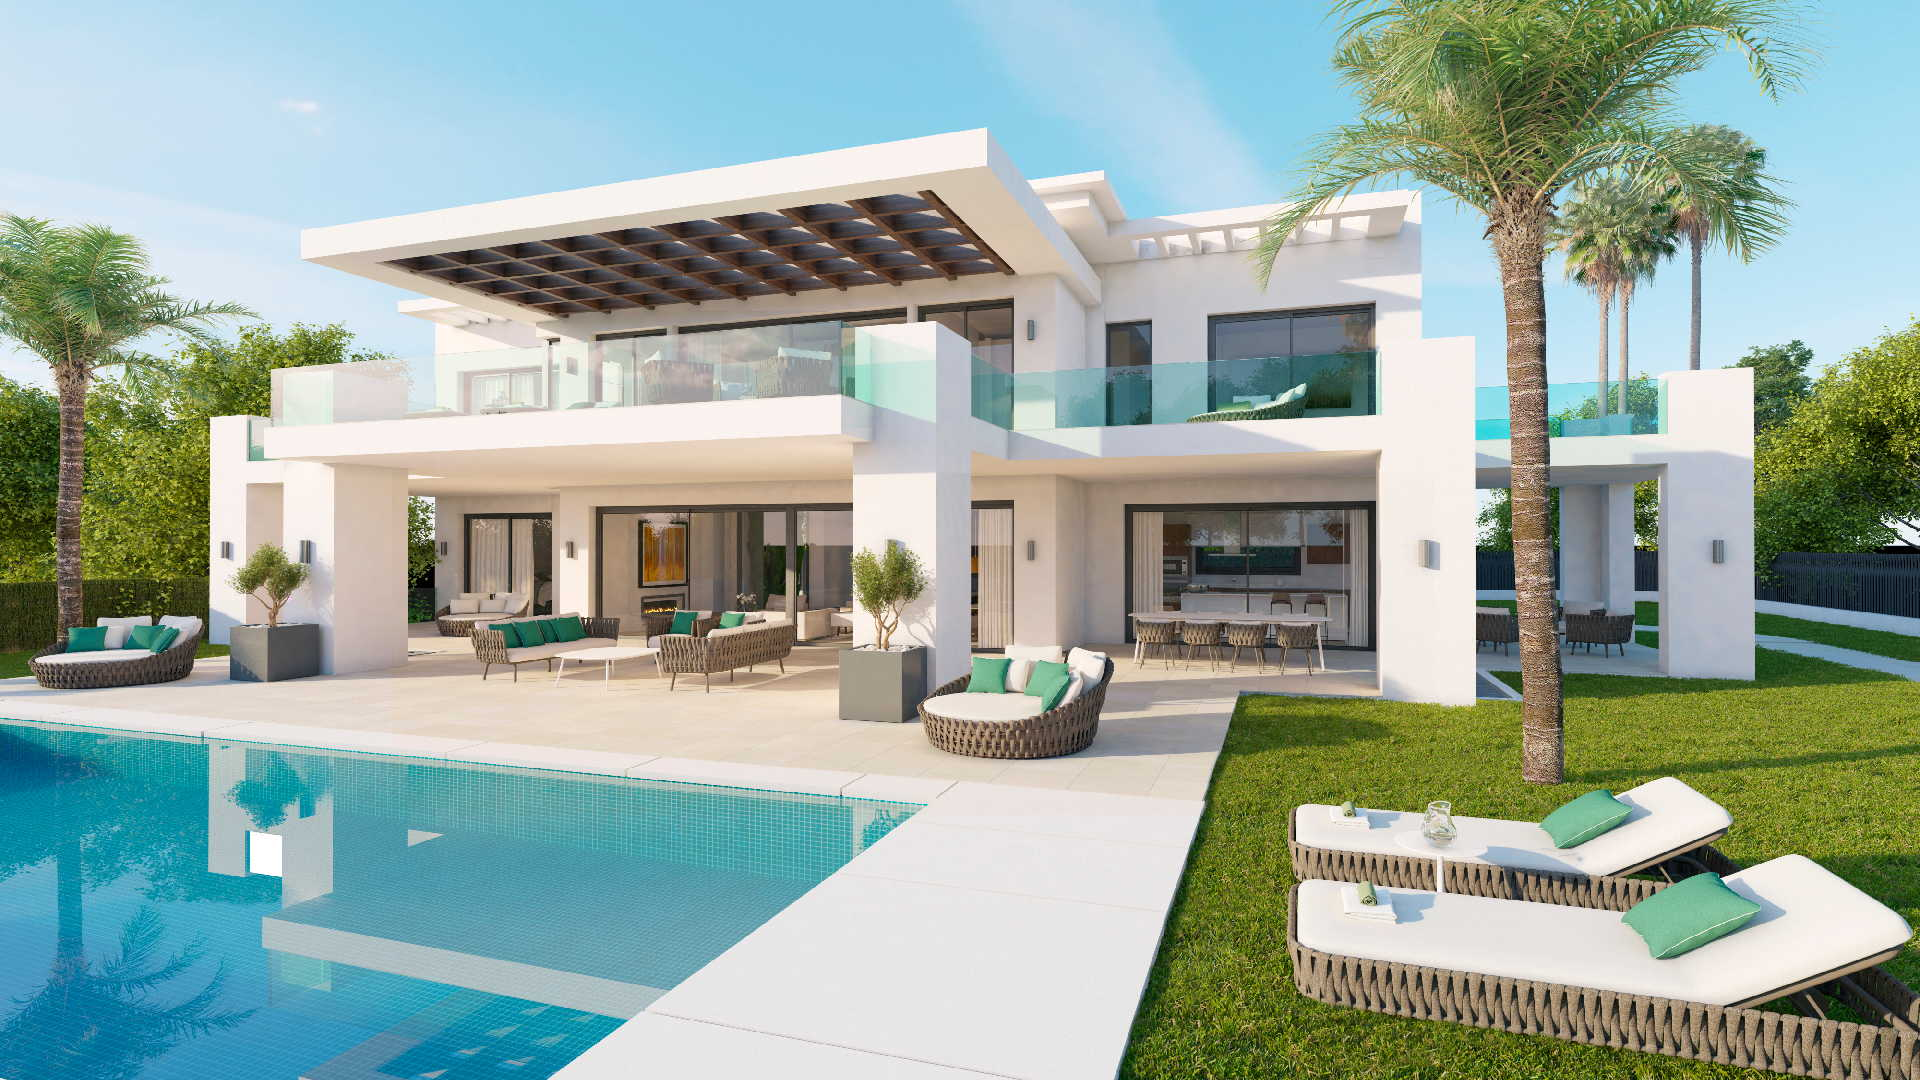 New villa in los olivos nueva andalucia marbella for sale for Modern villa design